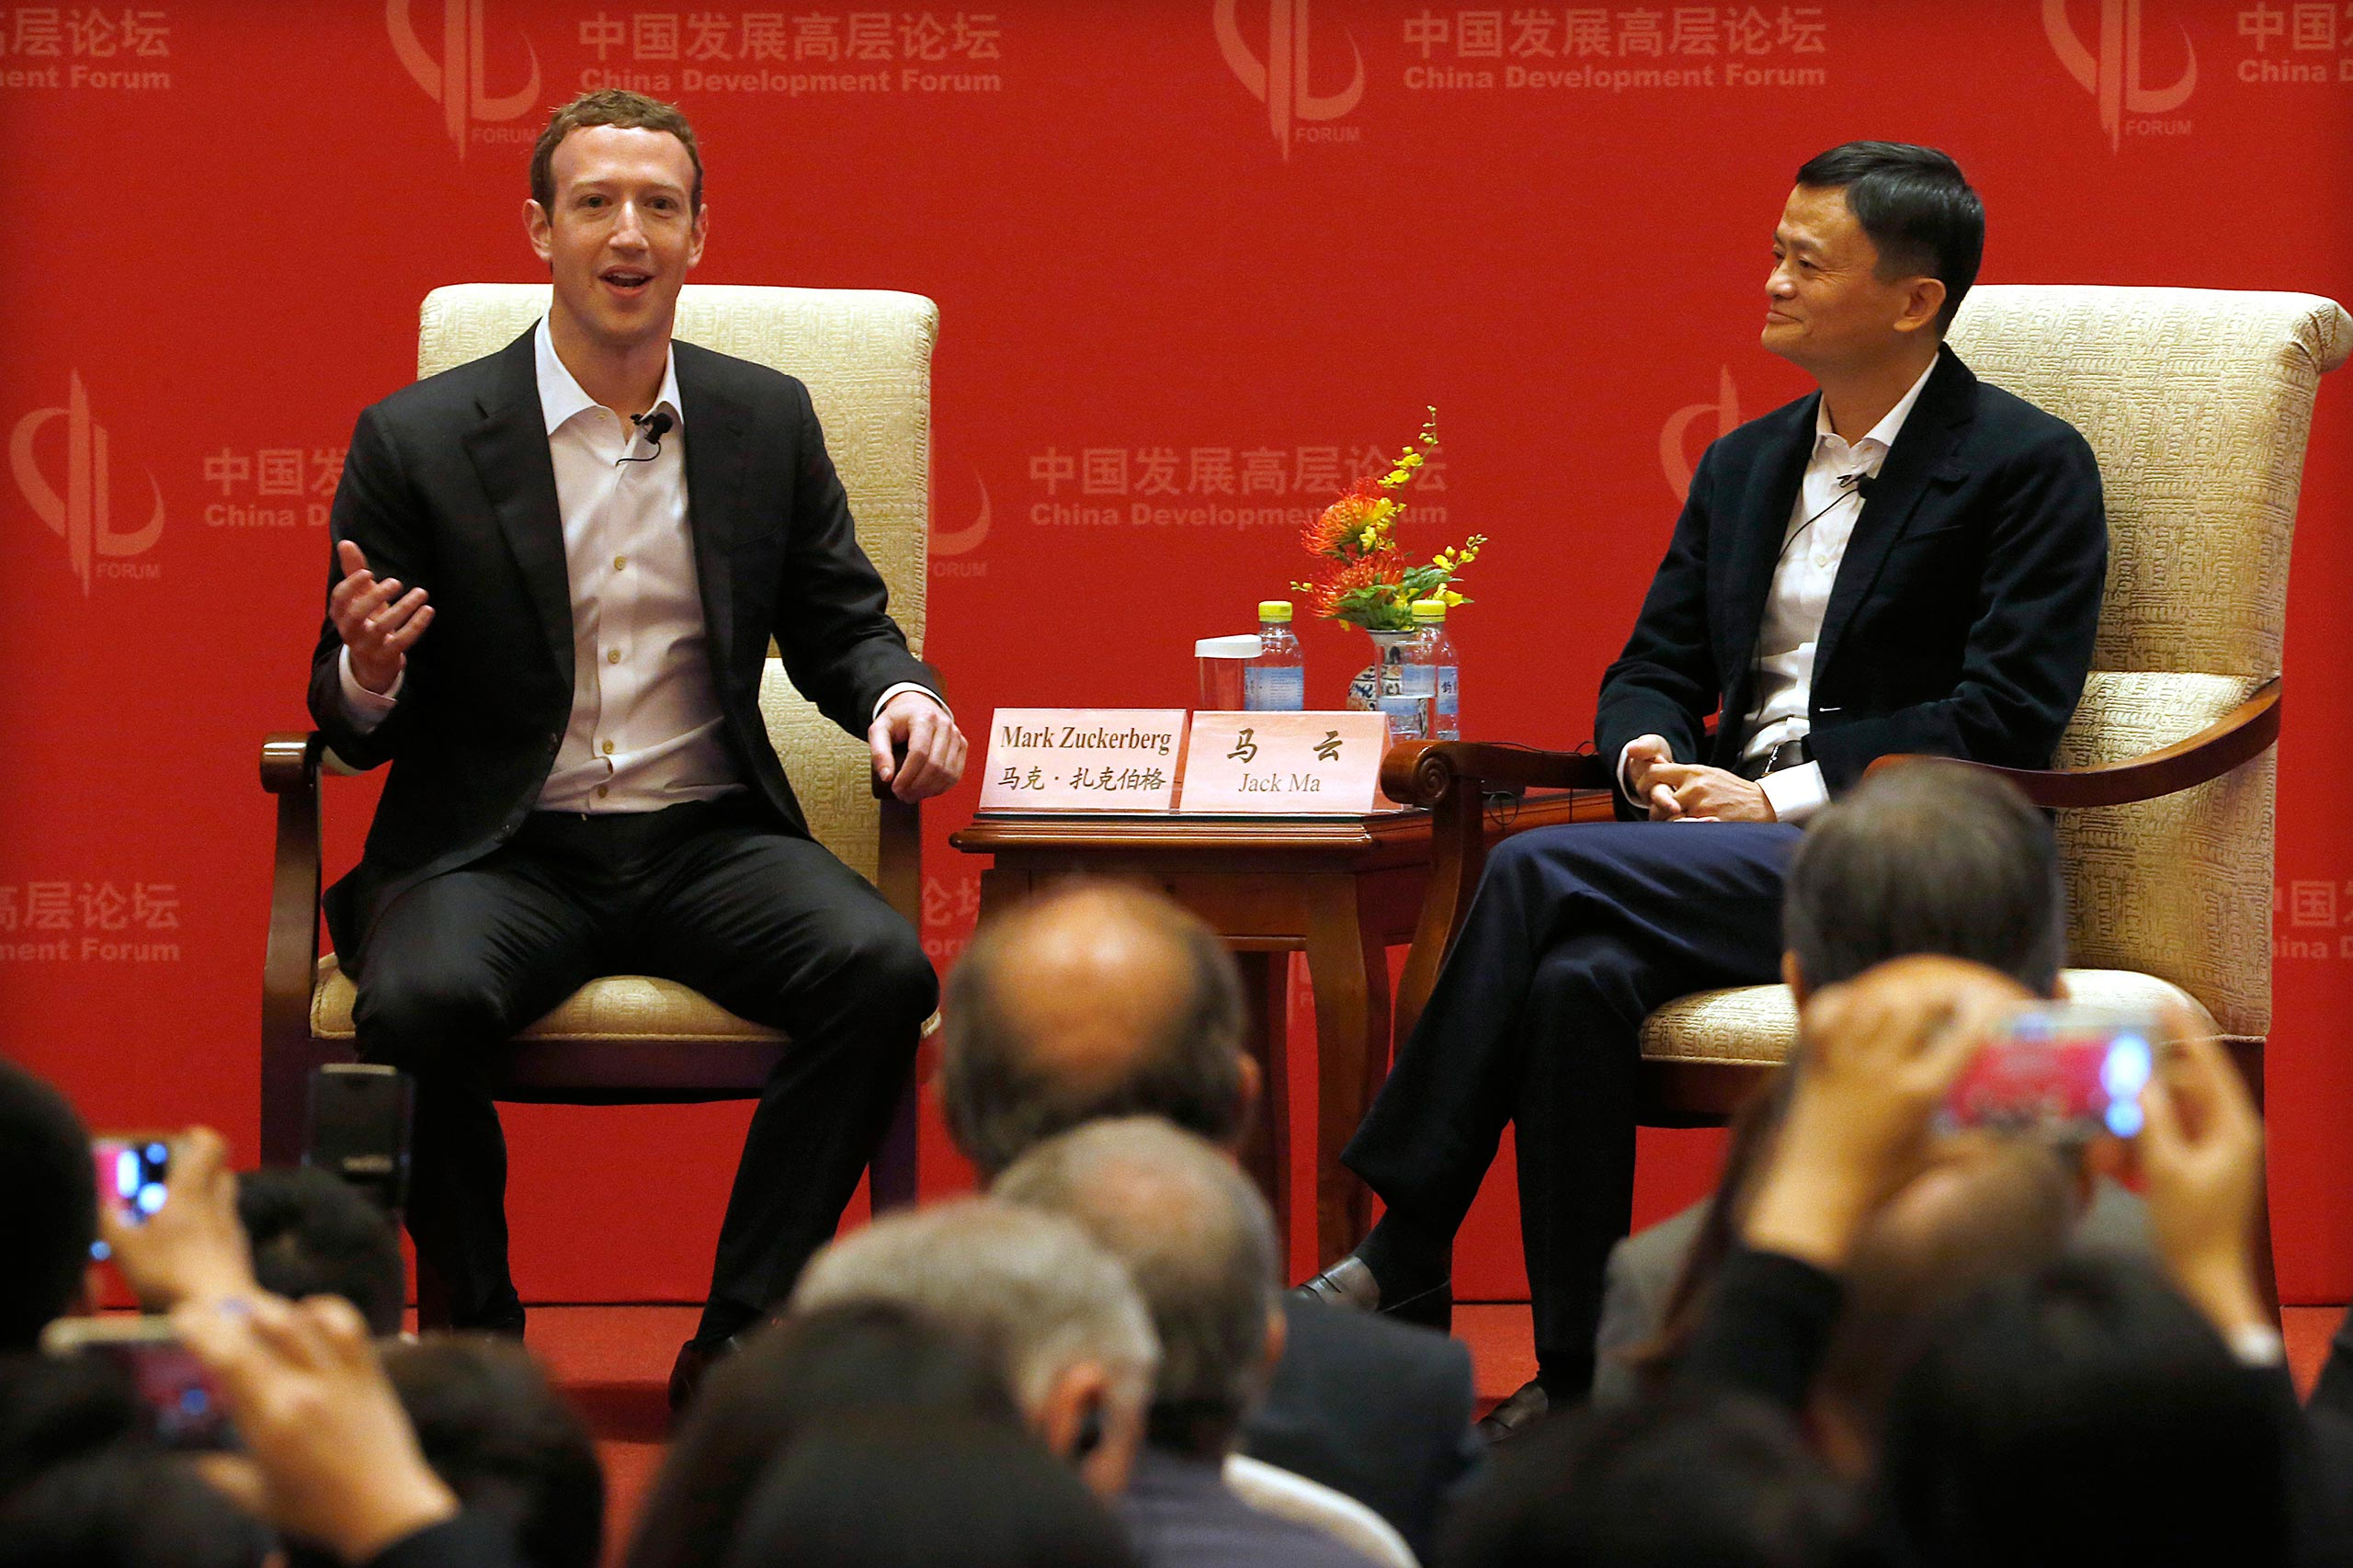 Facebook CEO Mark Zuckerberg speaks as Jack Ma, executive chairman of the Alibaba Group, listens during a panel discussion held as part of the China Development Forum at the Diaoyutai State Guesthouse in Beijing on March 19, 2016